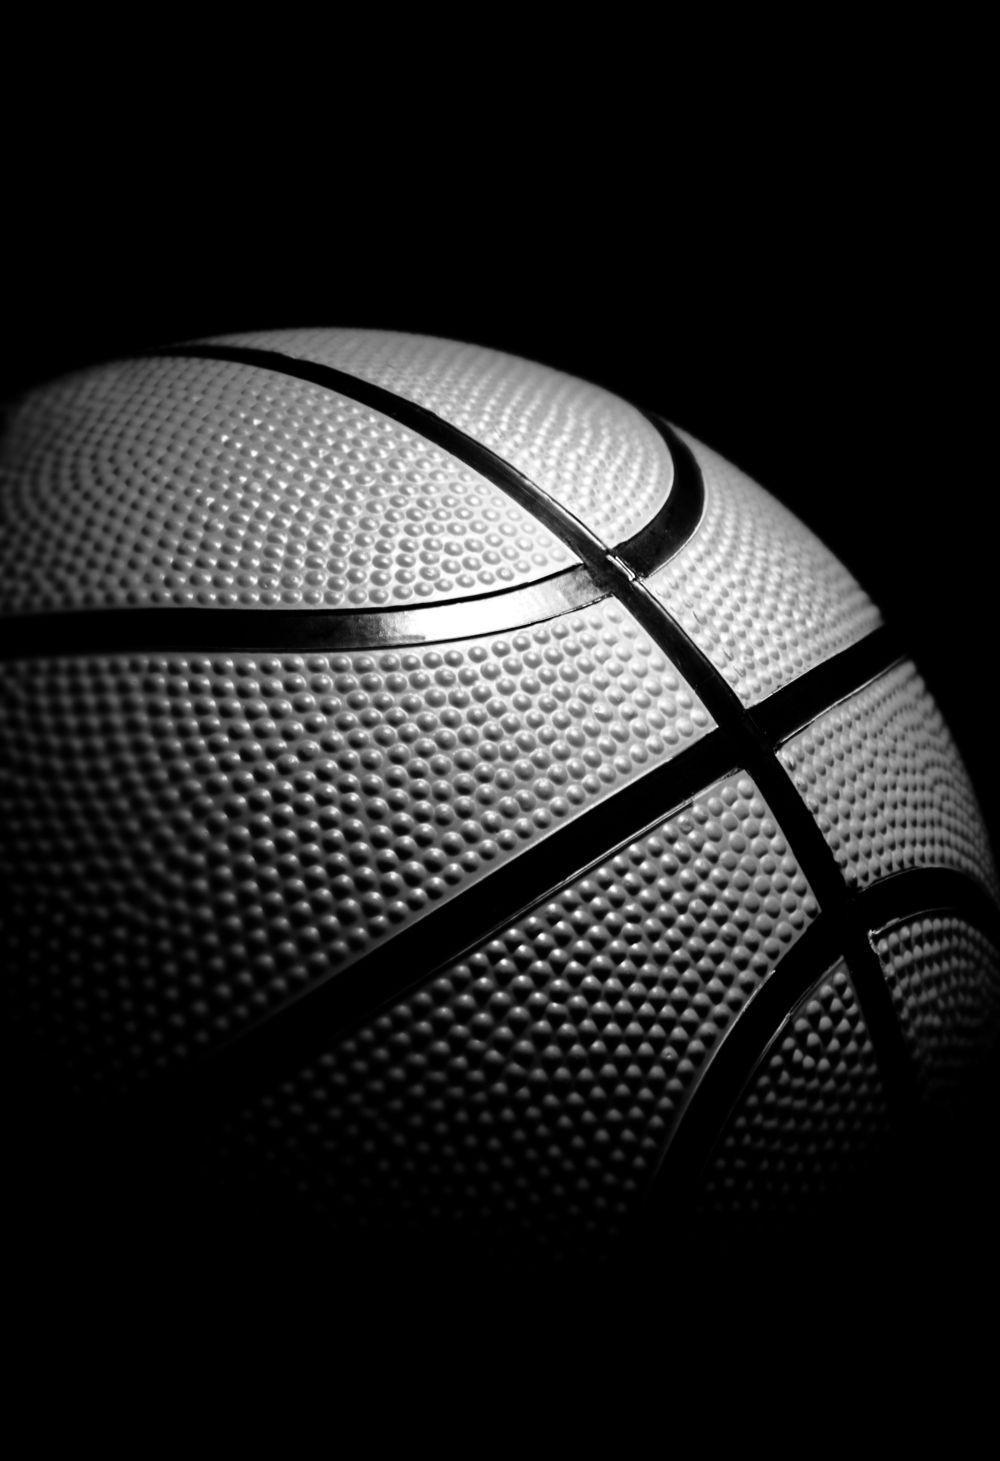 Image Result For Volleyball Photo Black White Photograph Louisville Cardinals Basketball College Basketball Players